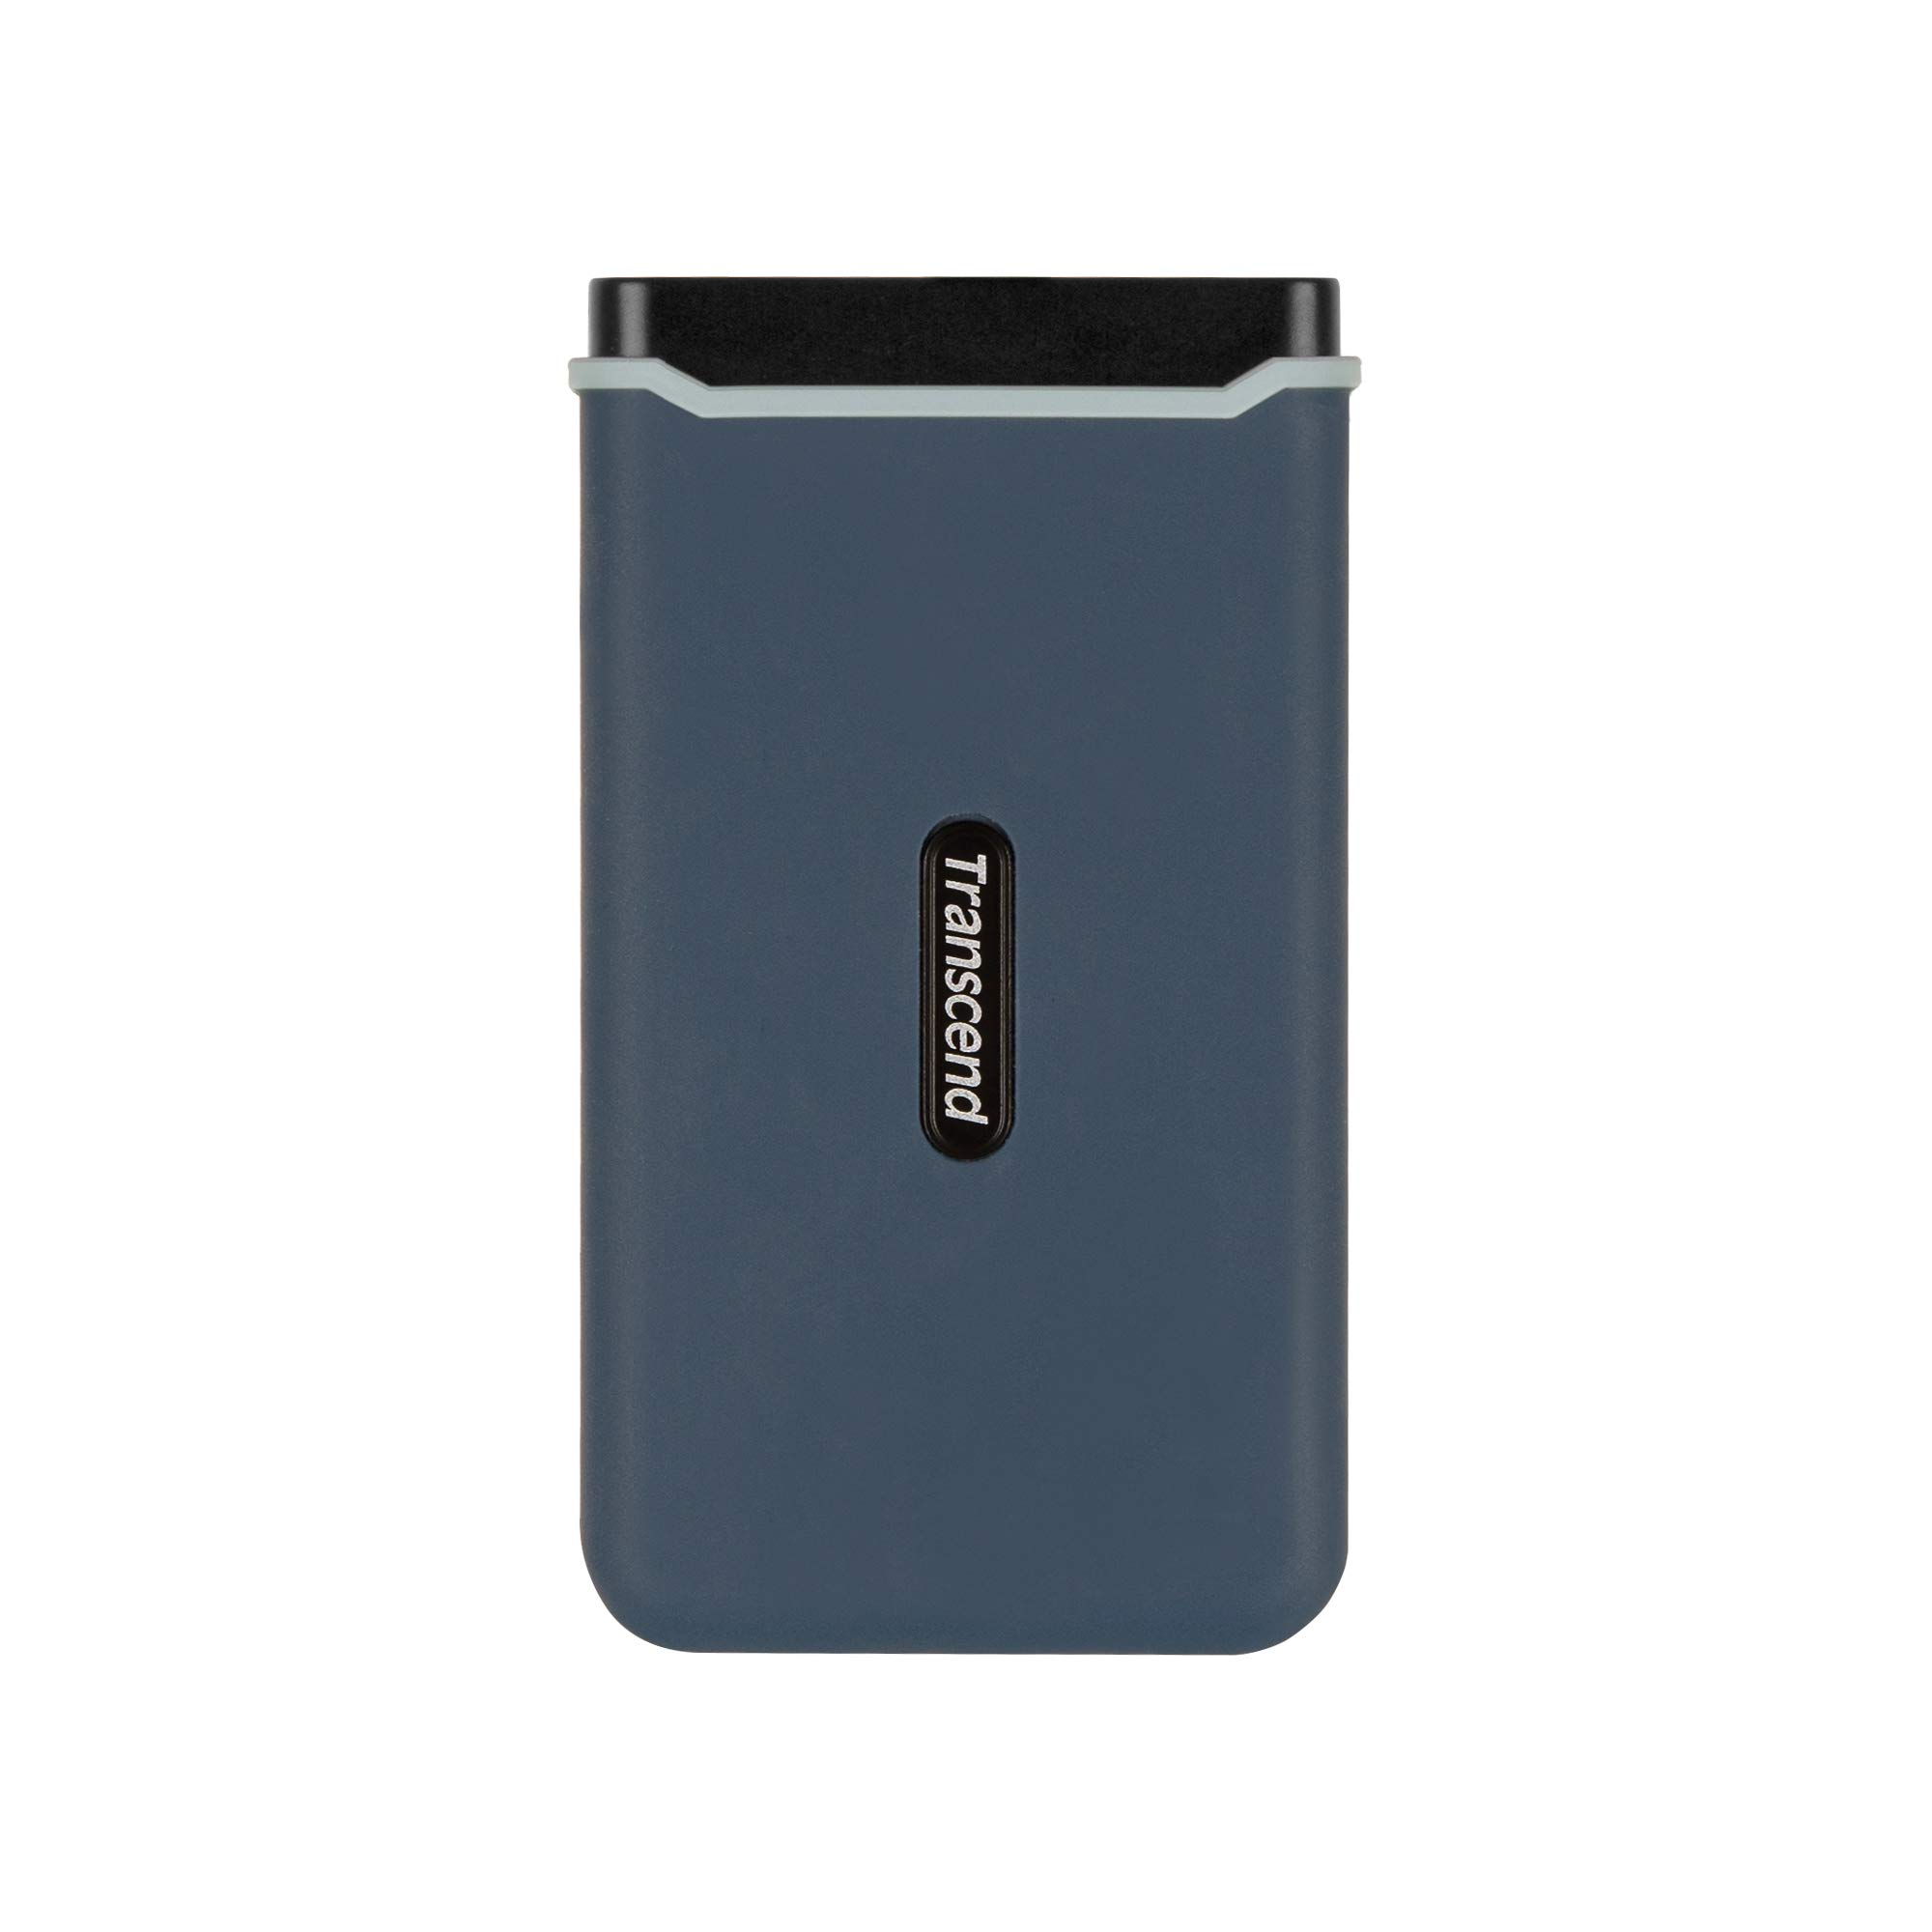 Transcend Information 960GB Portable SSD TLC USB 3.1 Gen 2, Navy Blue (TS960GESD350C)